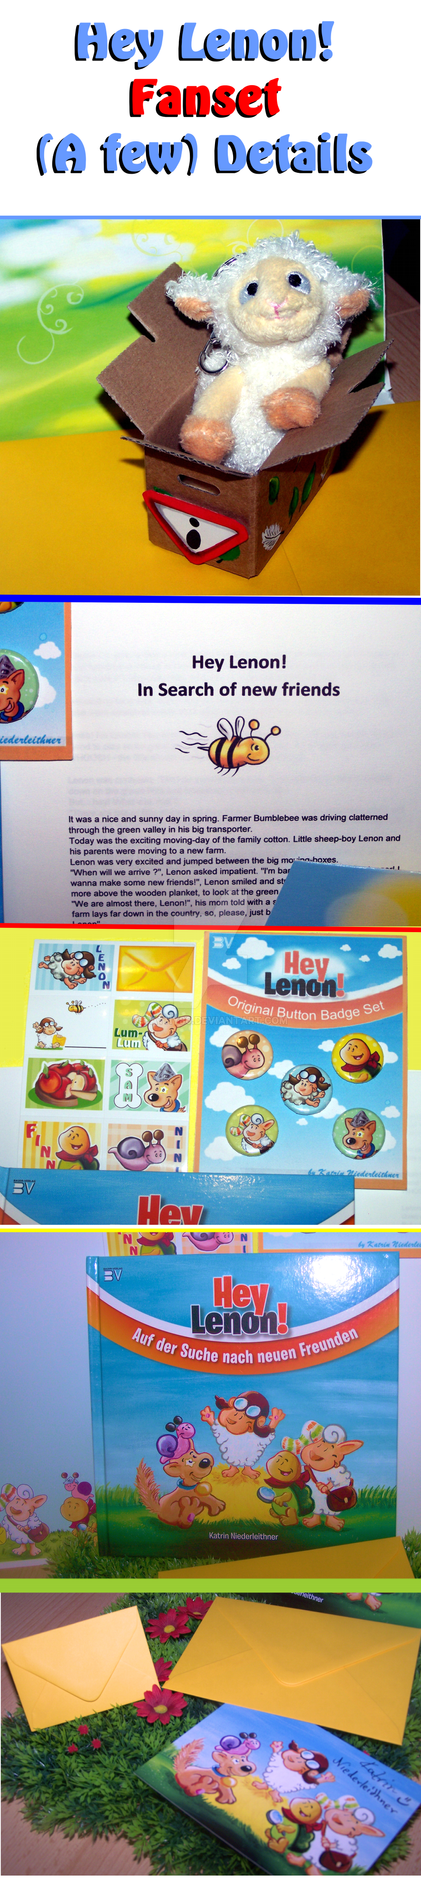 Lenon Fanset Details by Cathy86